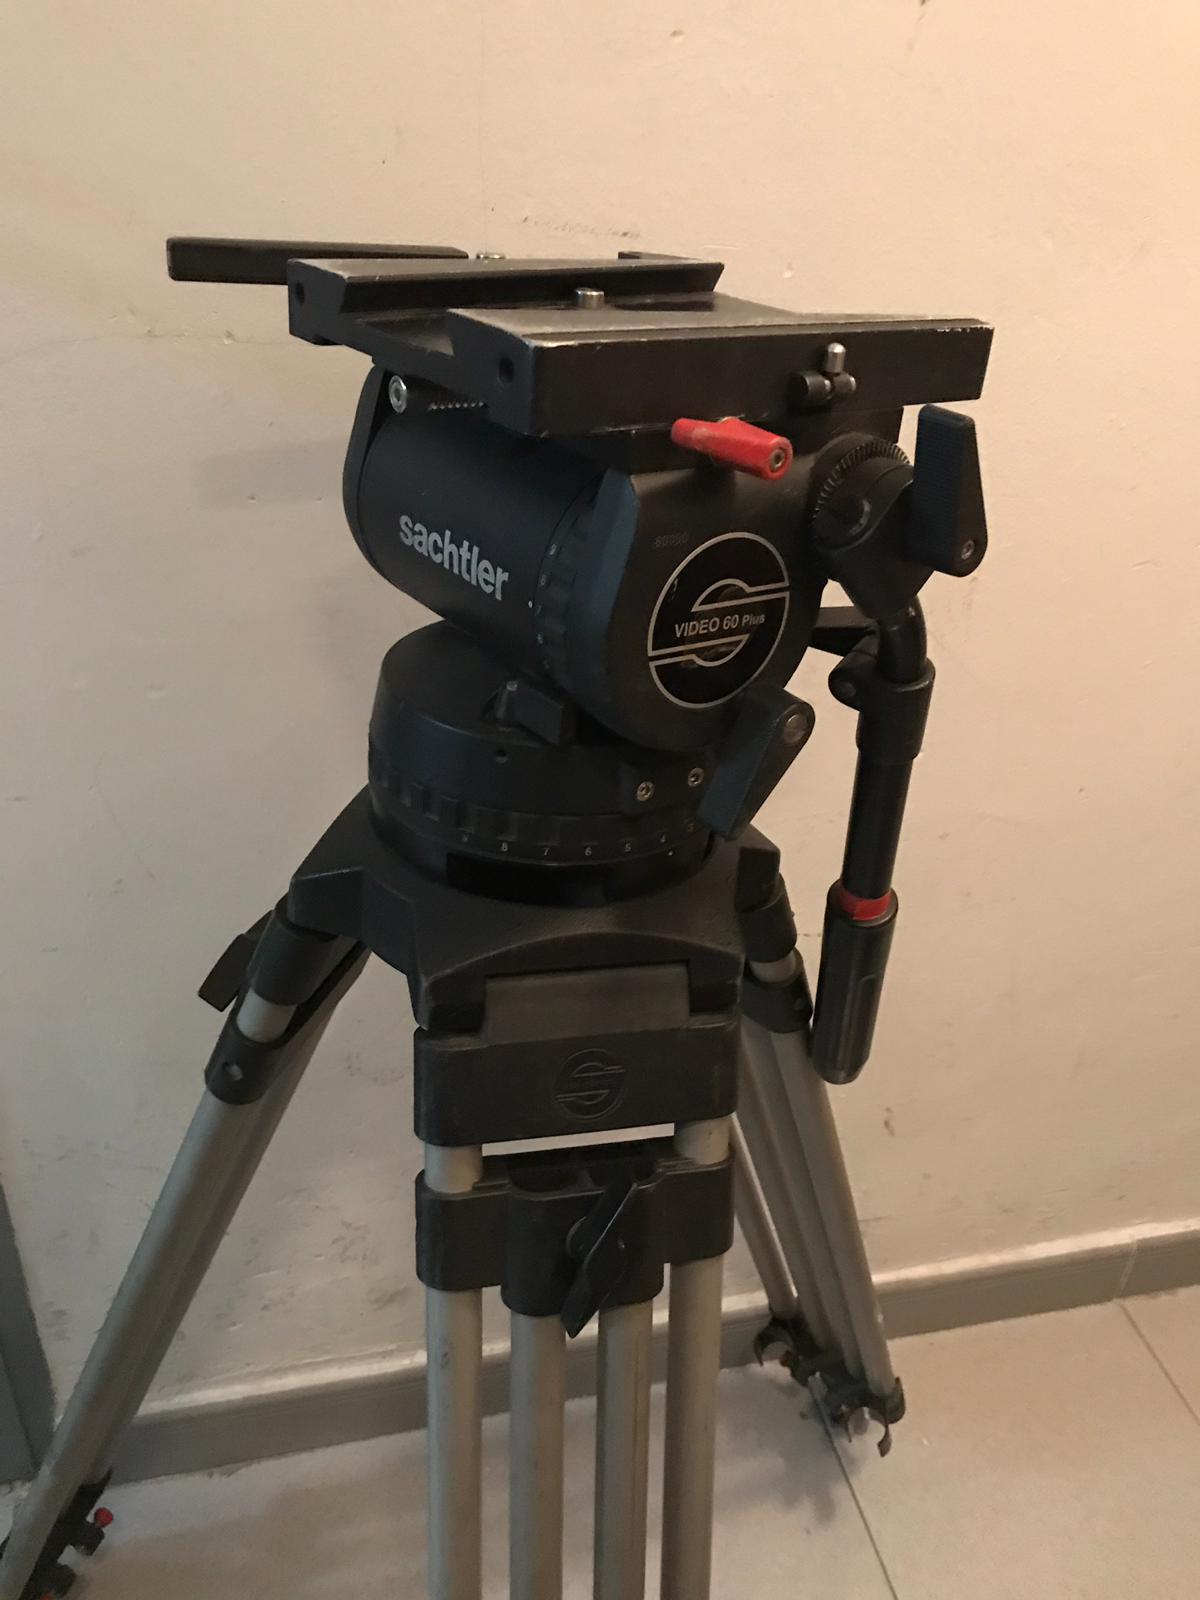 Sachtler Video 60 Plus - Image #1